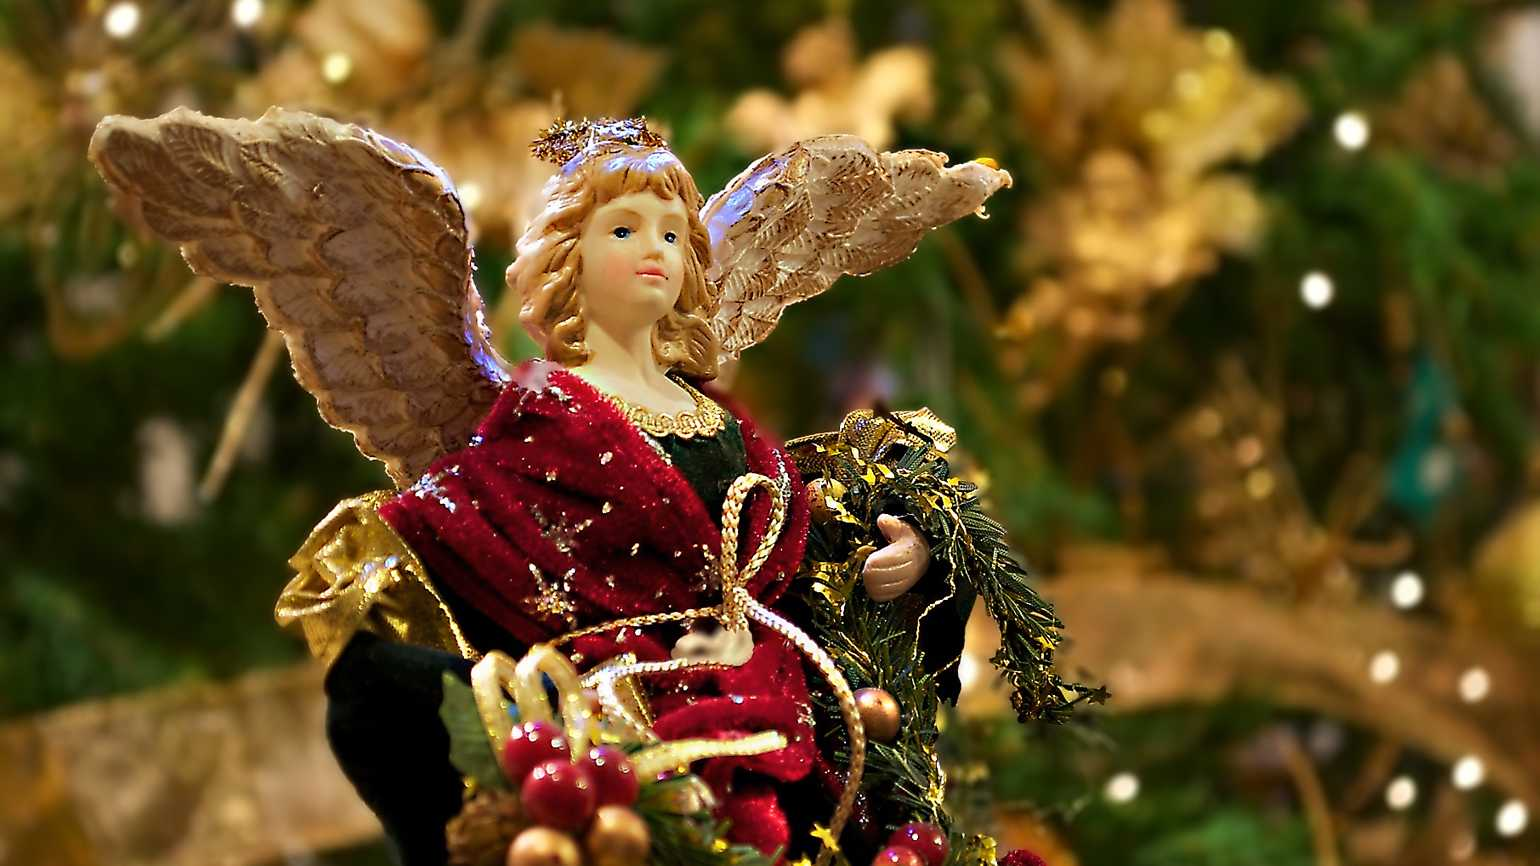 An ornament of an angel in a Christmas tree wearing festive holiday robes